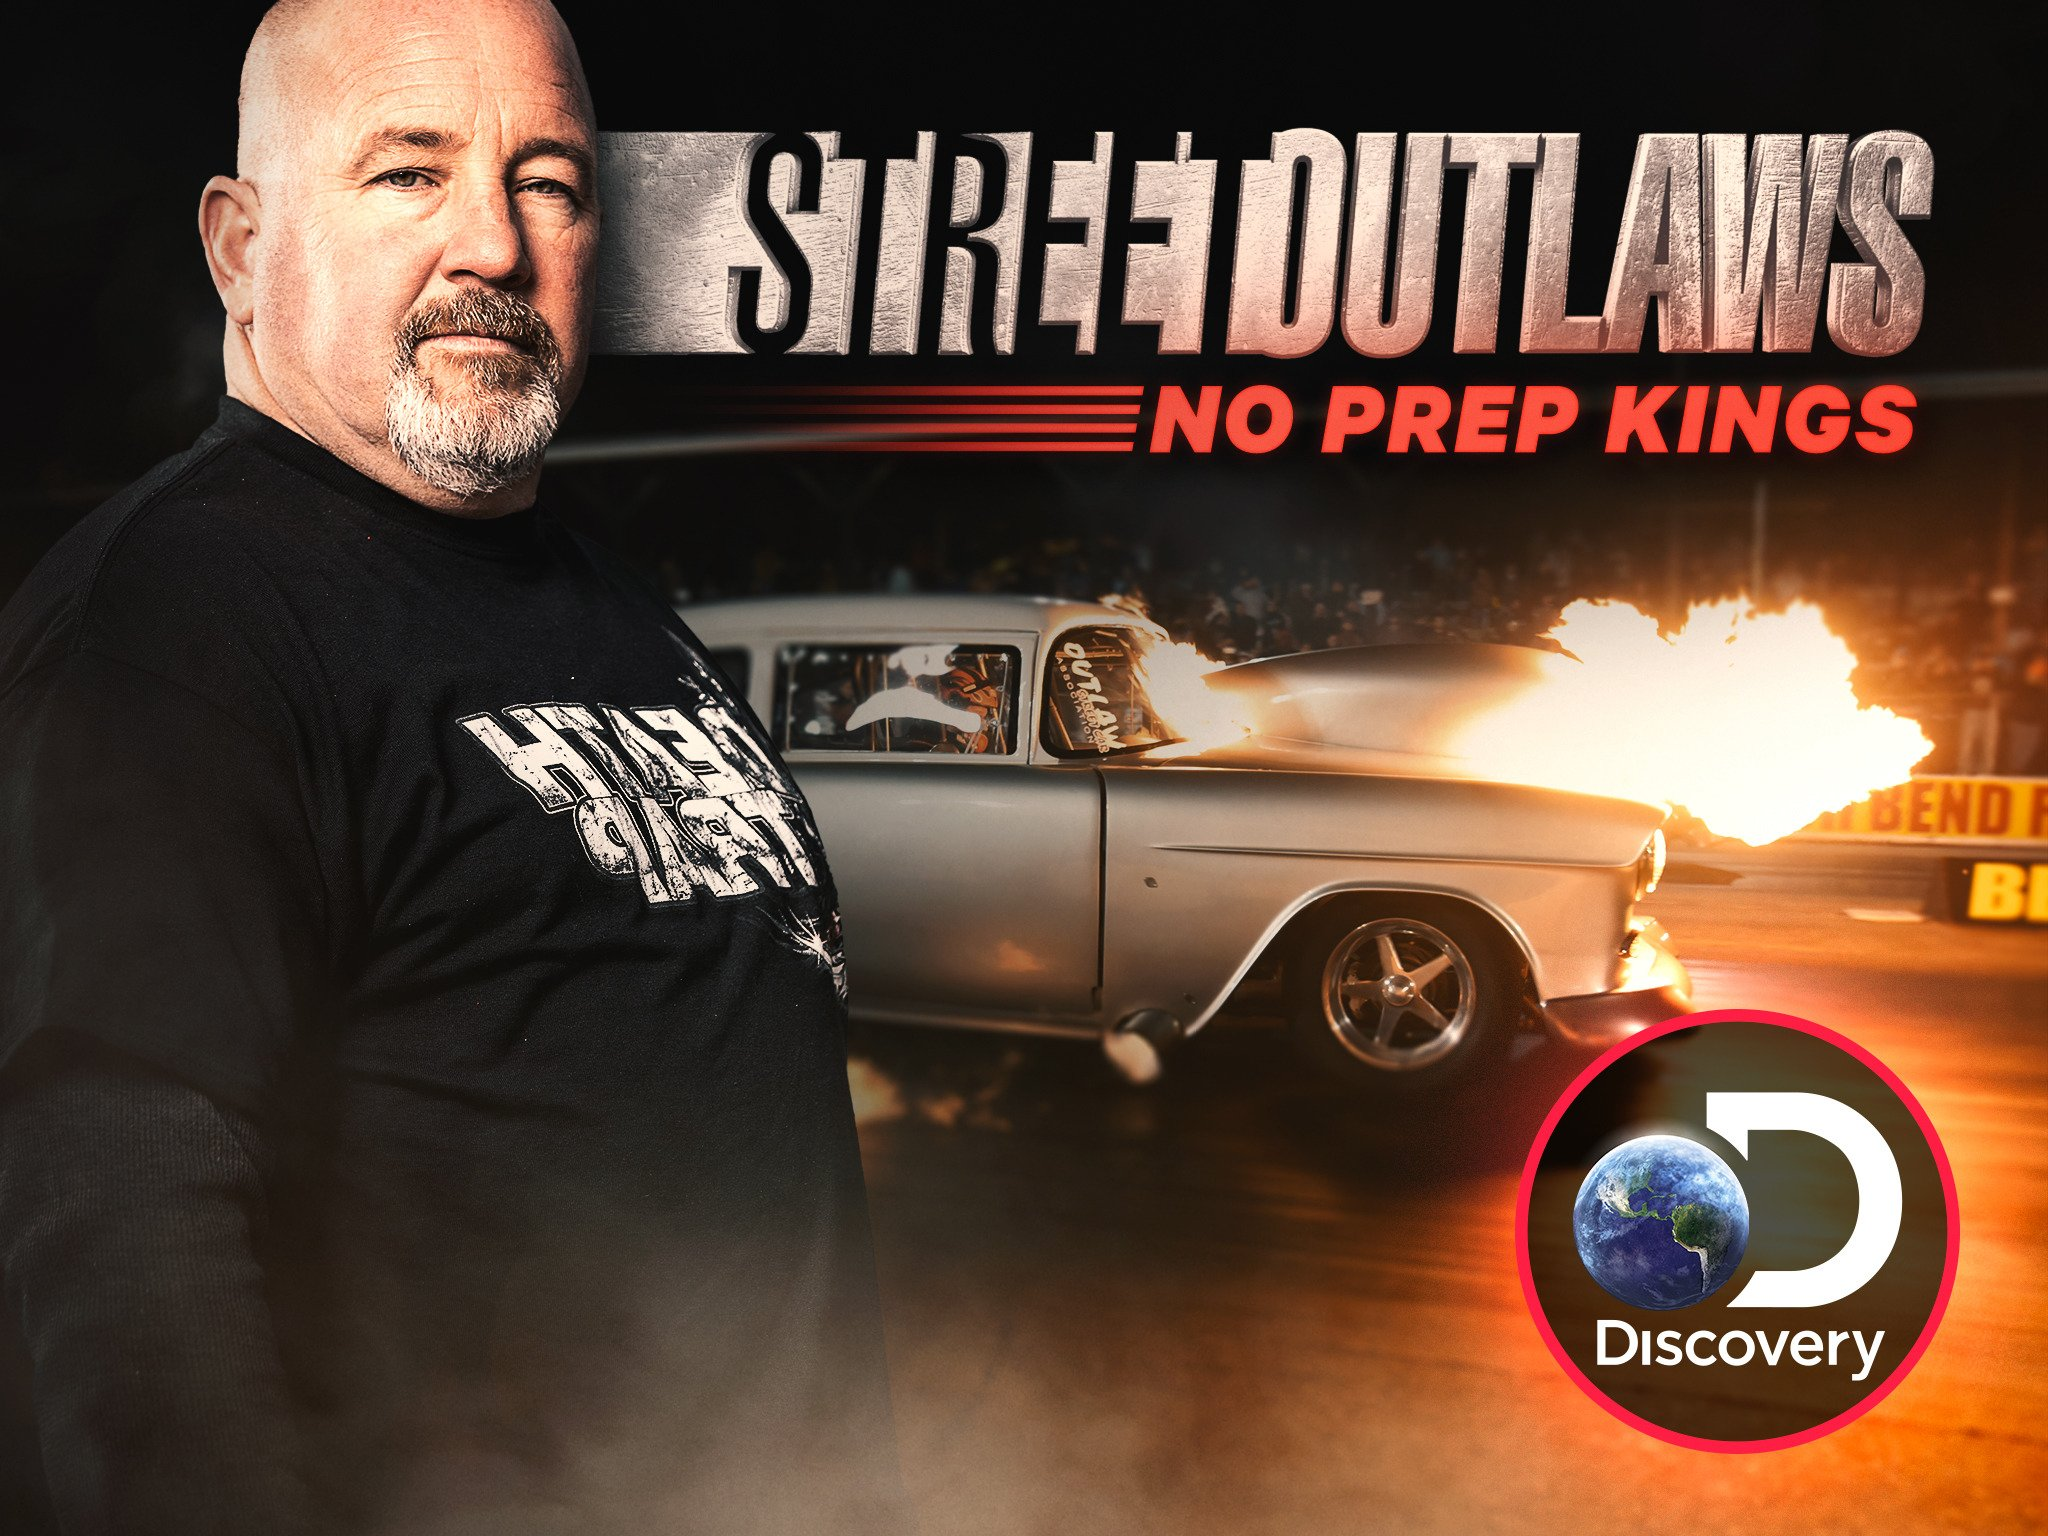 watch street outlaws season 3 online free